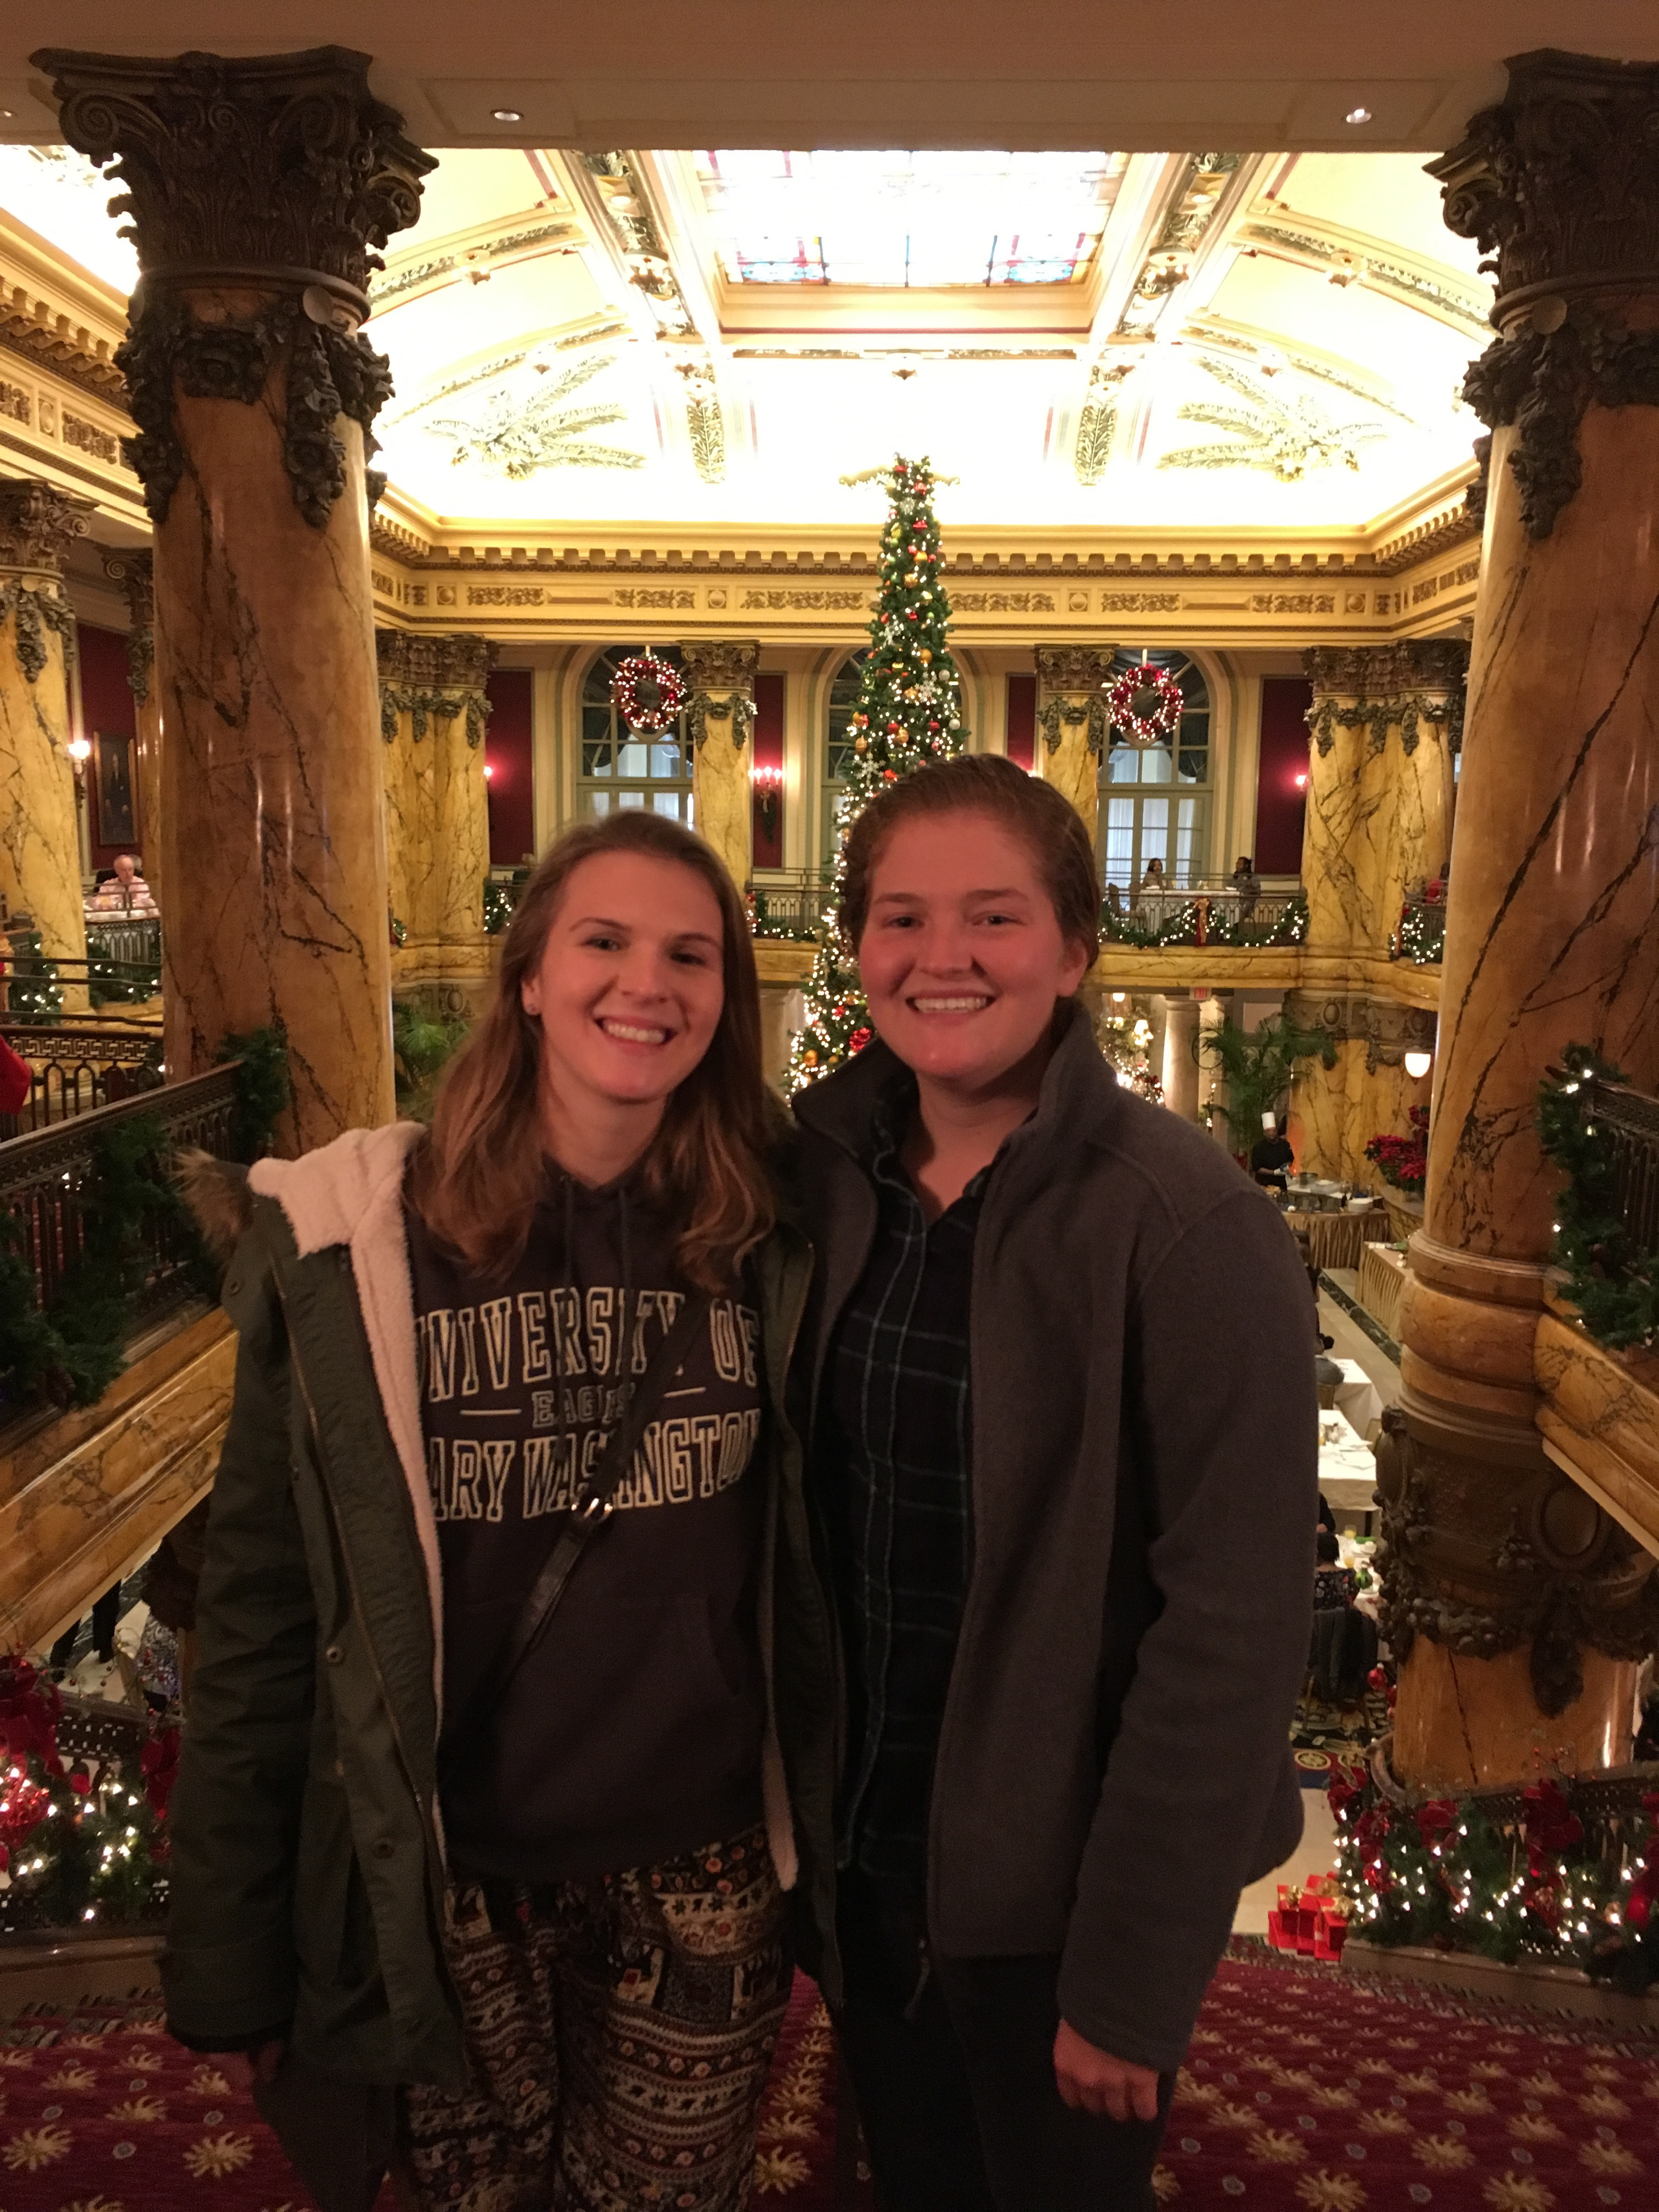 Christmas happenings at the Jefferson Hotel in RVA